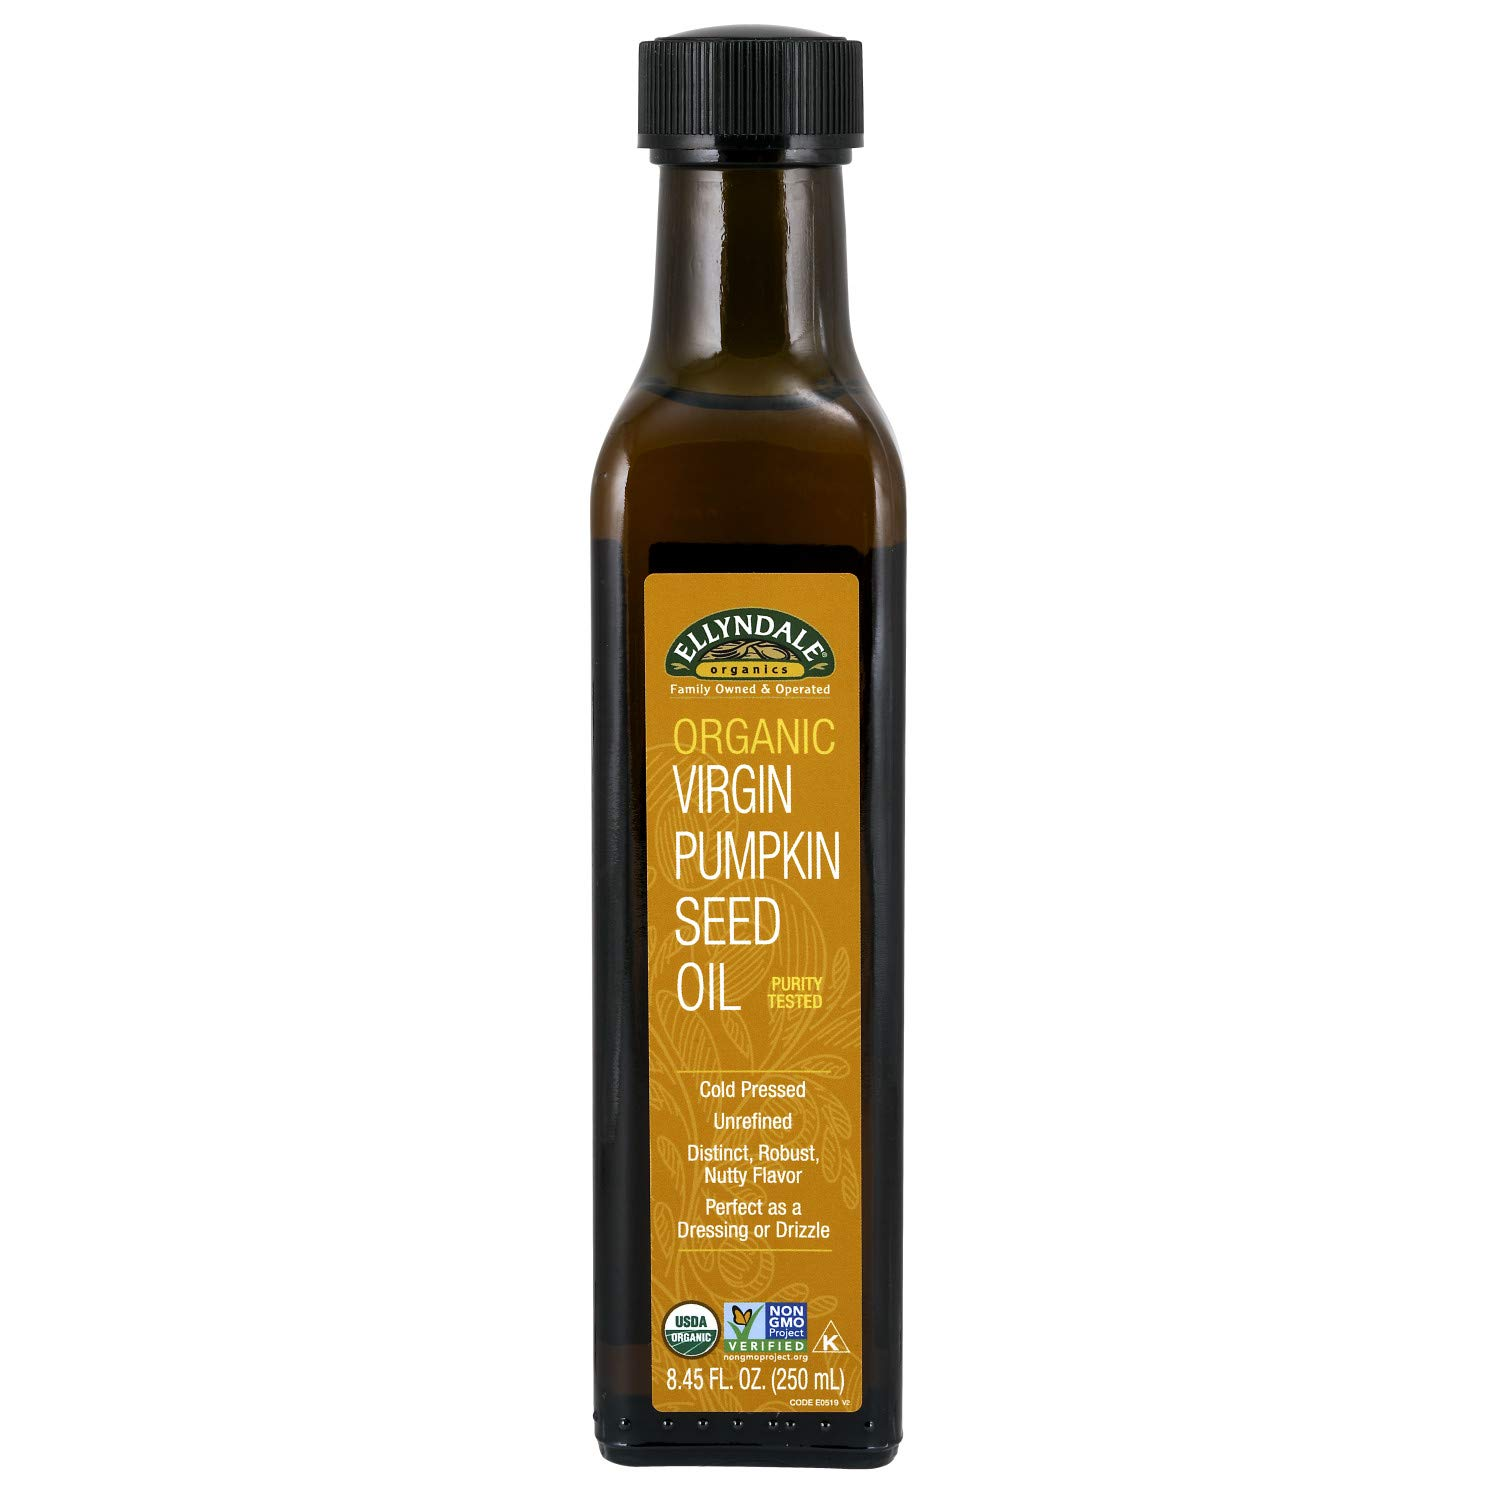 NOW Foods, Organic Virgin Pumpkin Seed Oil, Cold-Pressed, Unrefined, Distinct Robust, Nutty Flavor, Certified Non-GMO, 8.45-Ounce